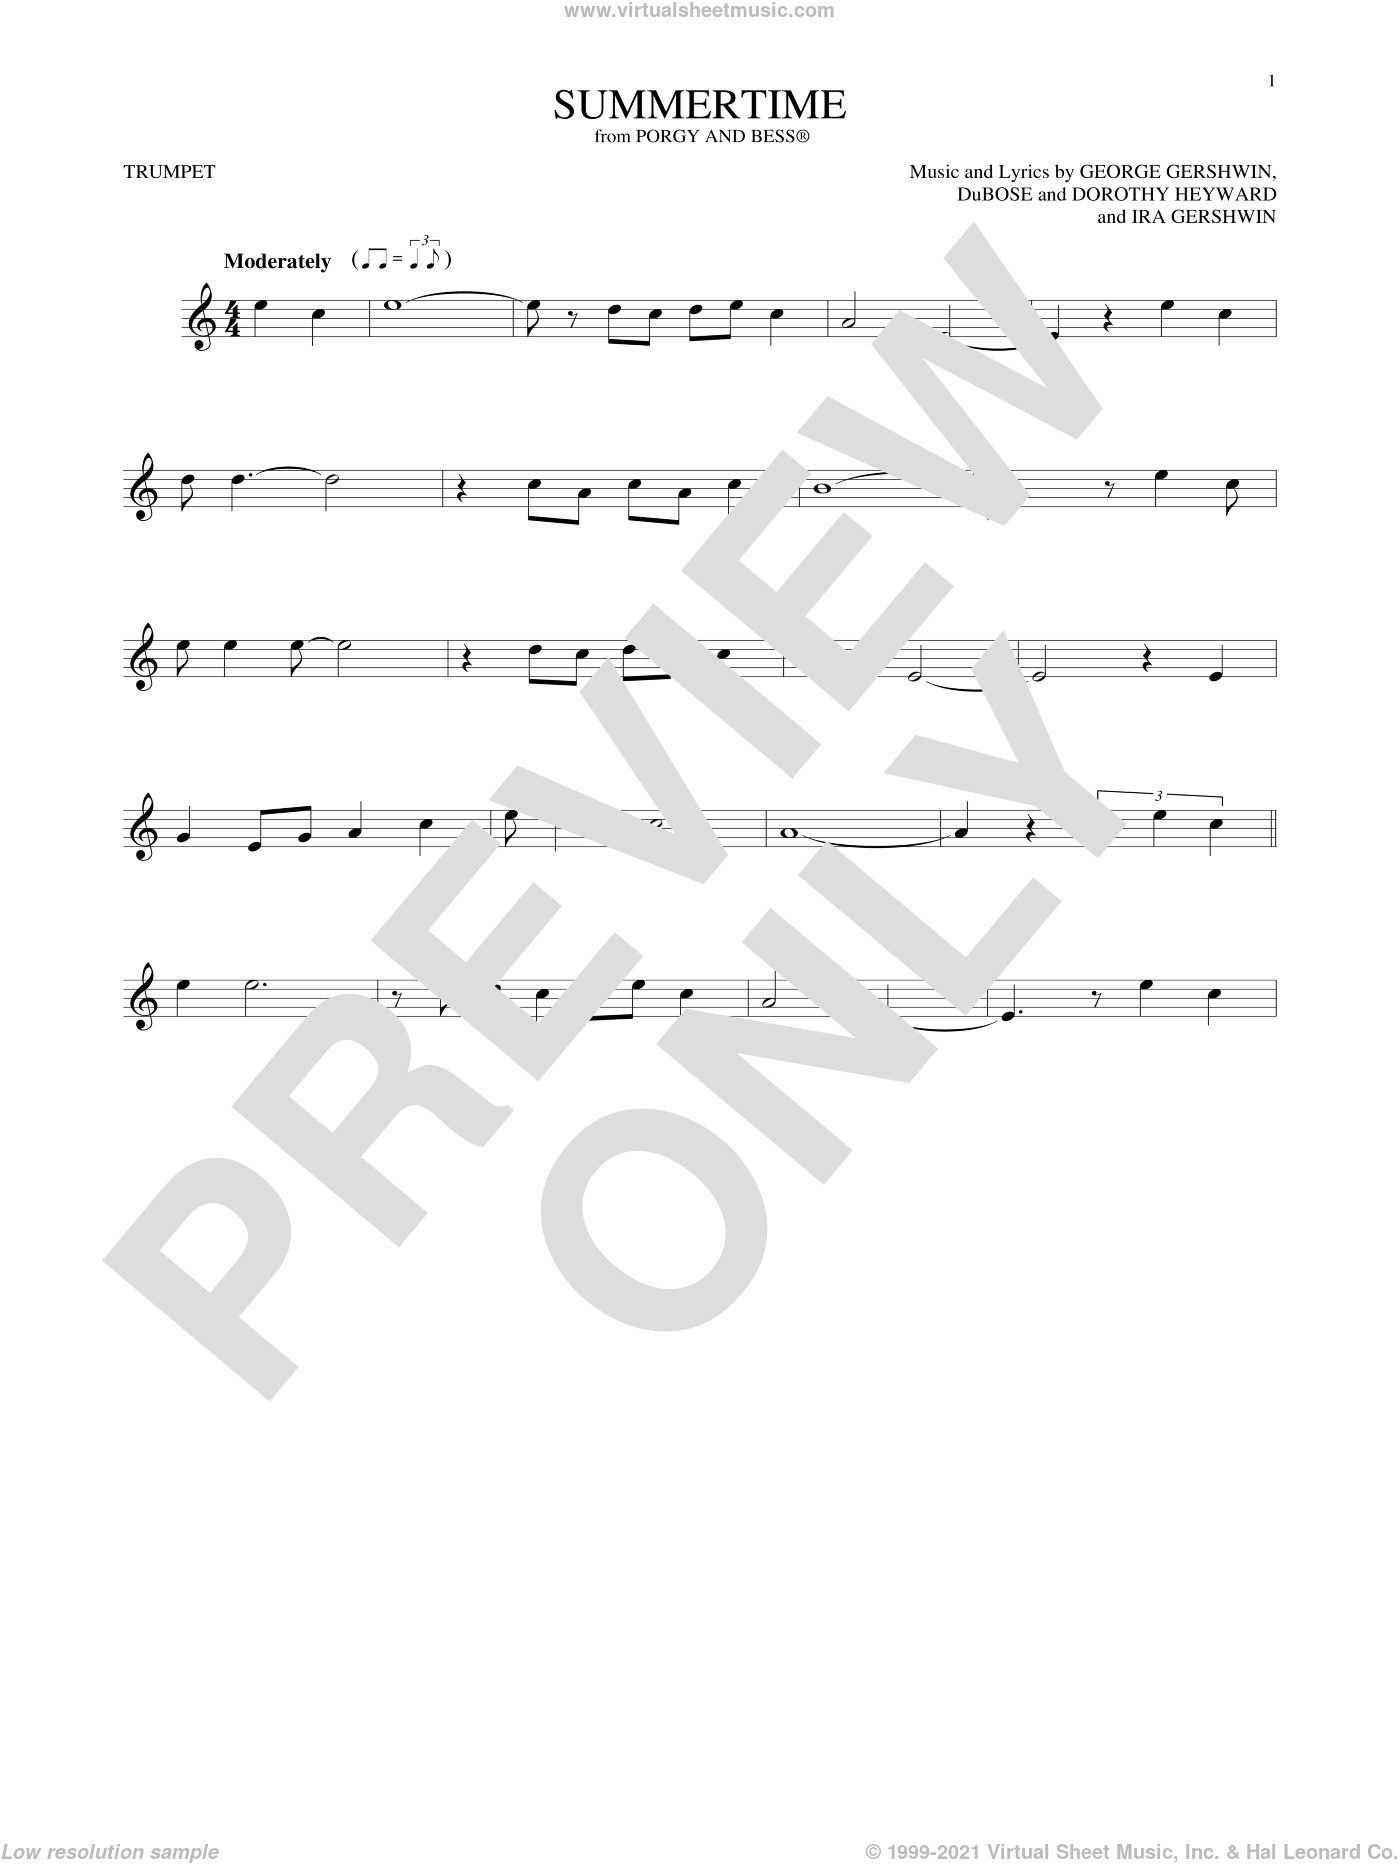 Summertime sheet music for trumpet solo by George Gershwin, Dorothy Heyward, DuBose Heyward and Ira Gershwin, intermediate skill level